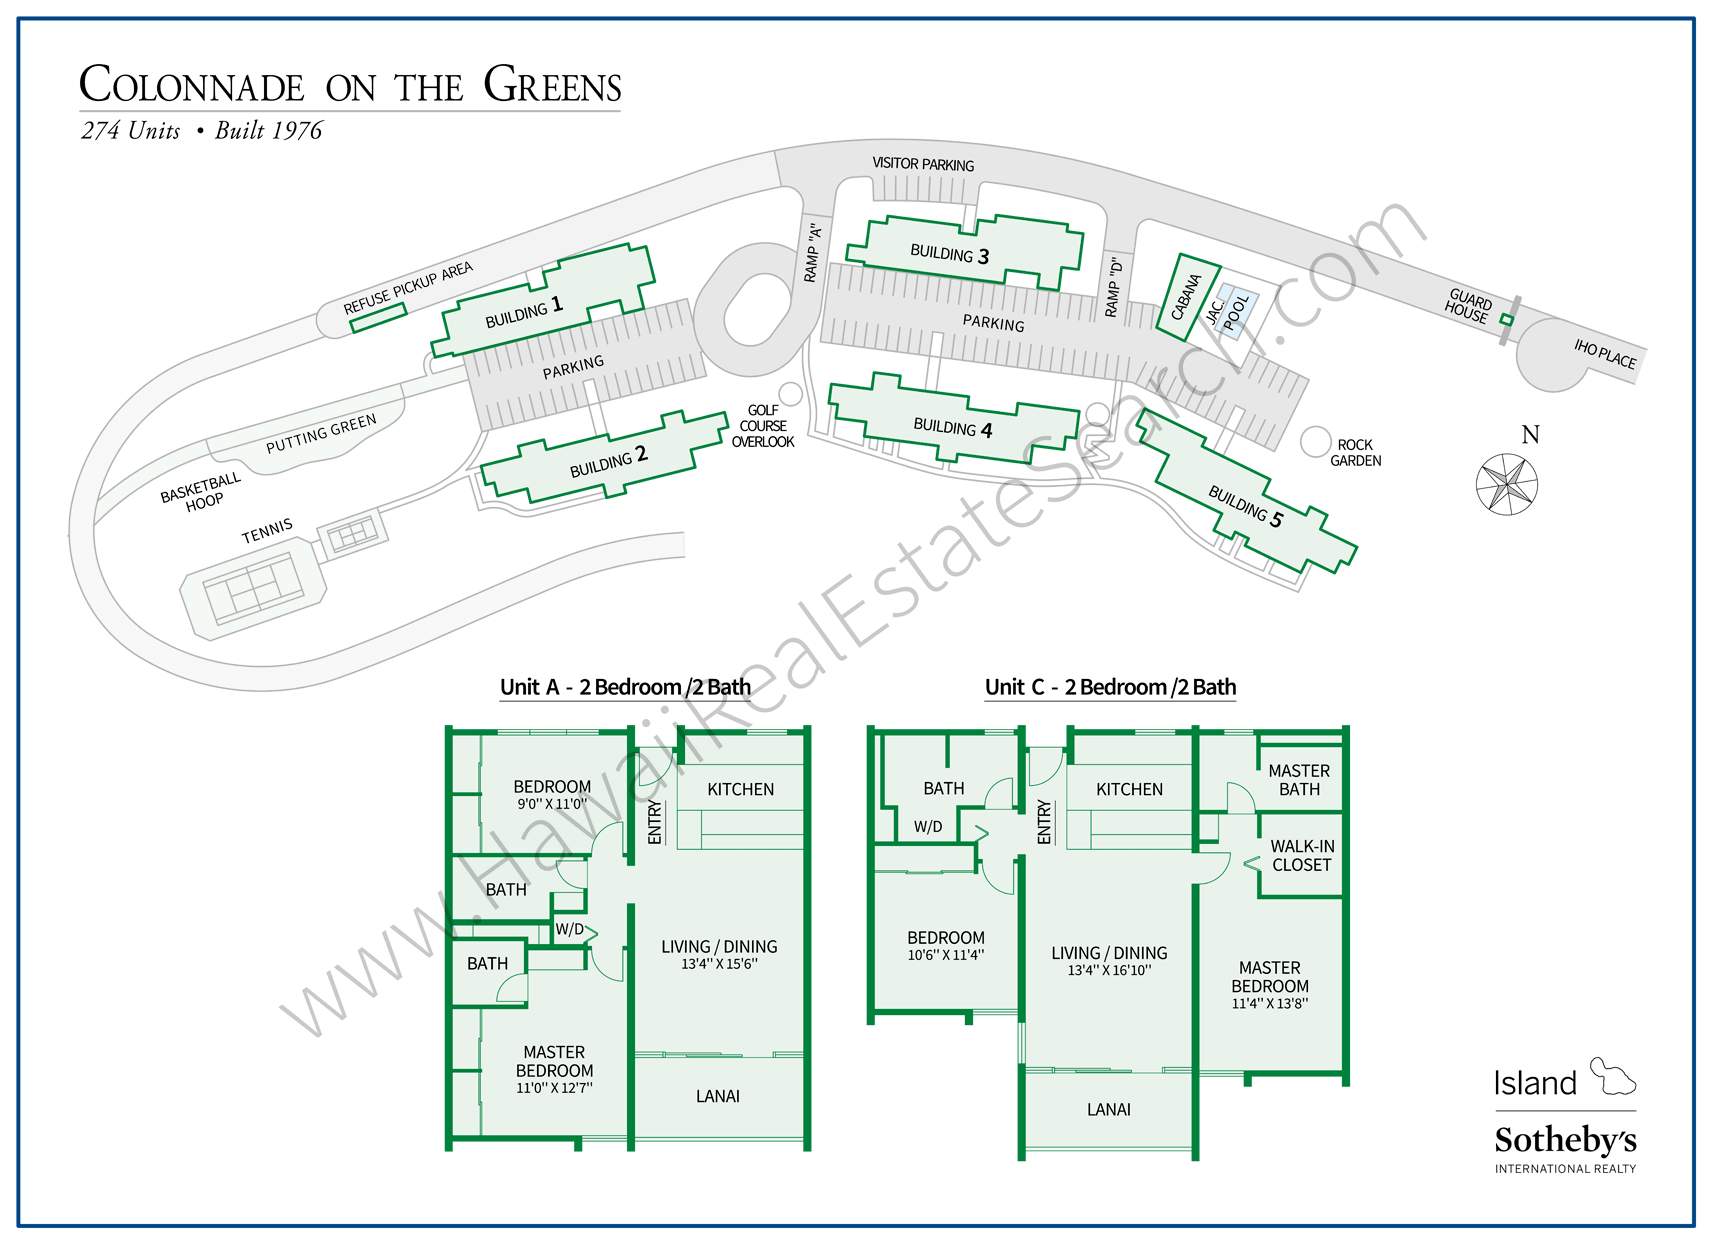 Colonnade on the Green - Map and Floor Plans